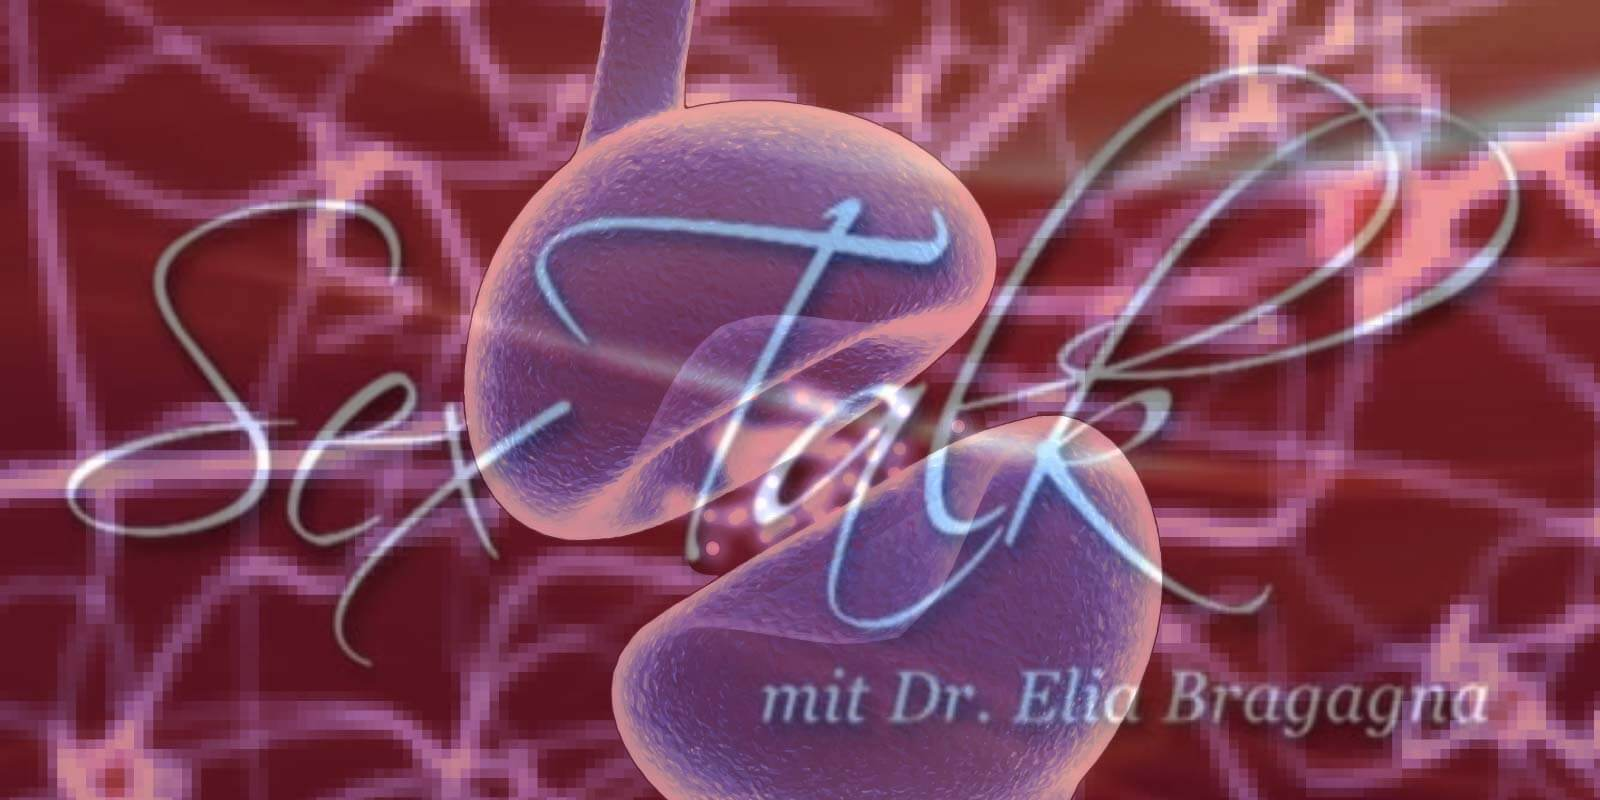 Multiple Sklerose und Partnerschaft - Interview Dr. Kollross-Reisenbauer (SexTalk)